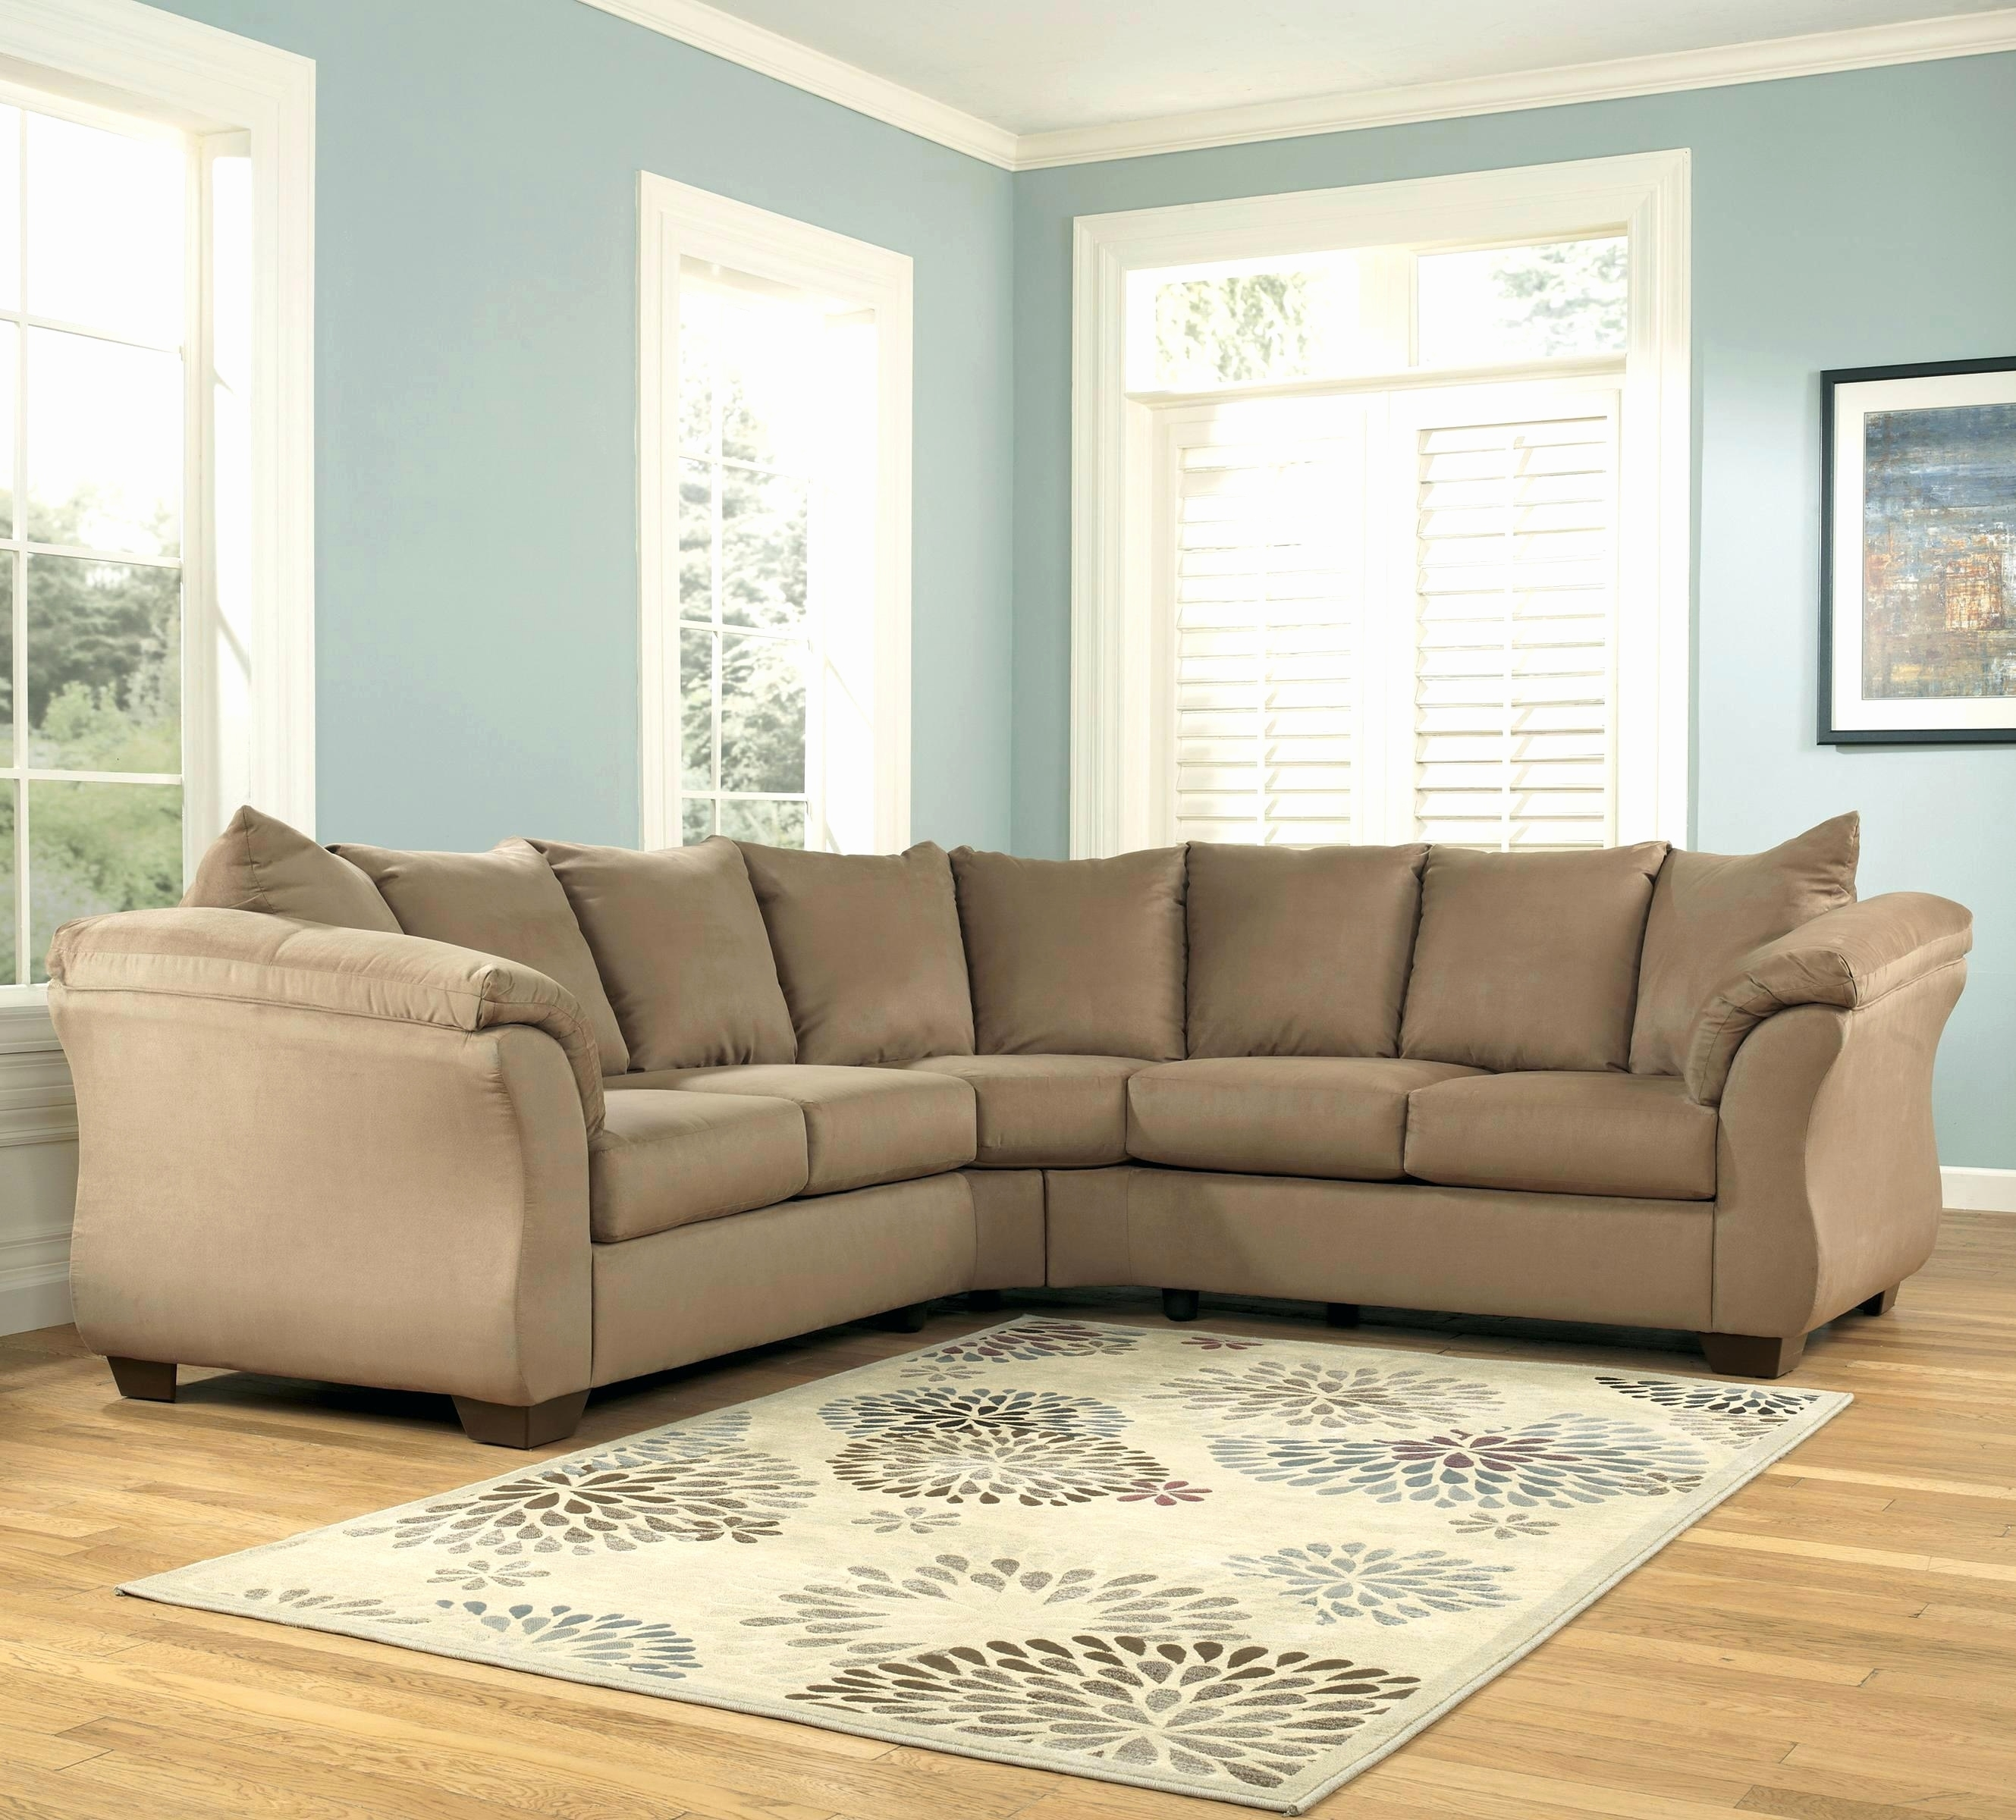 New Sectional Sofa Montreal 2018 – Couches And Sofas Ideas Throughout Kijiji Montreal Sectional Sofas (Image 8 of 10)